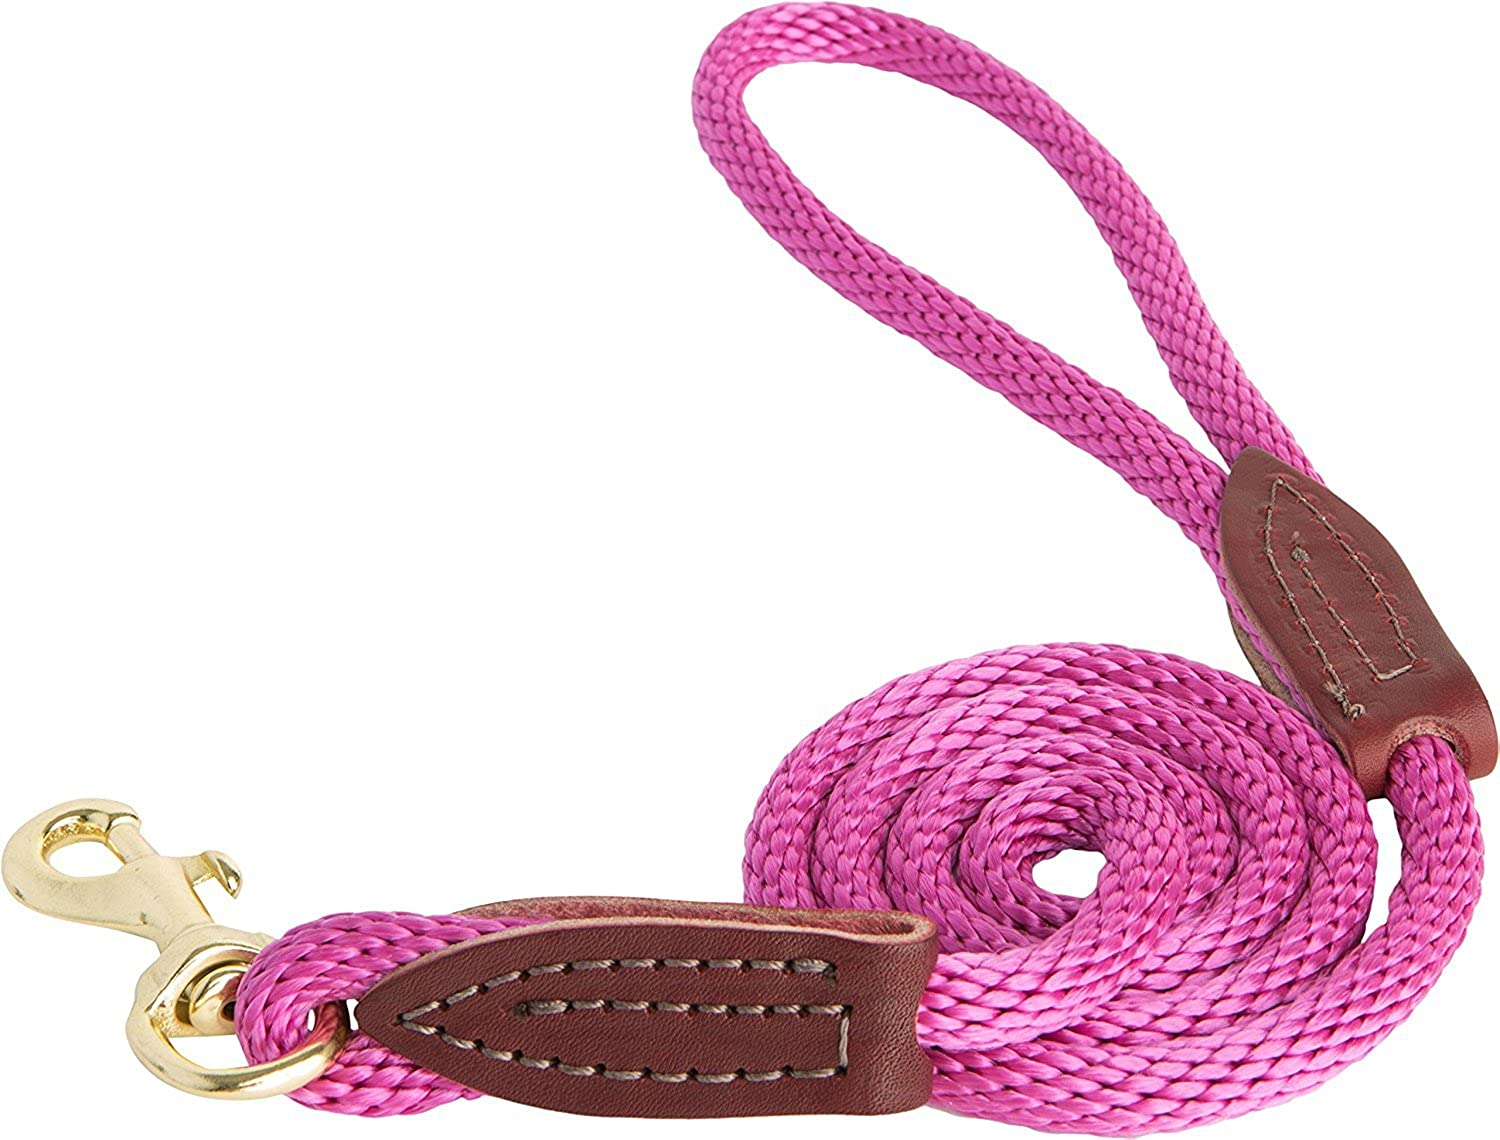 OmniPet 3605103 British Rope Snap Lead for Dogs, 4', Raspberry